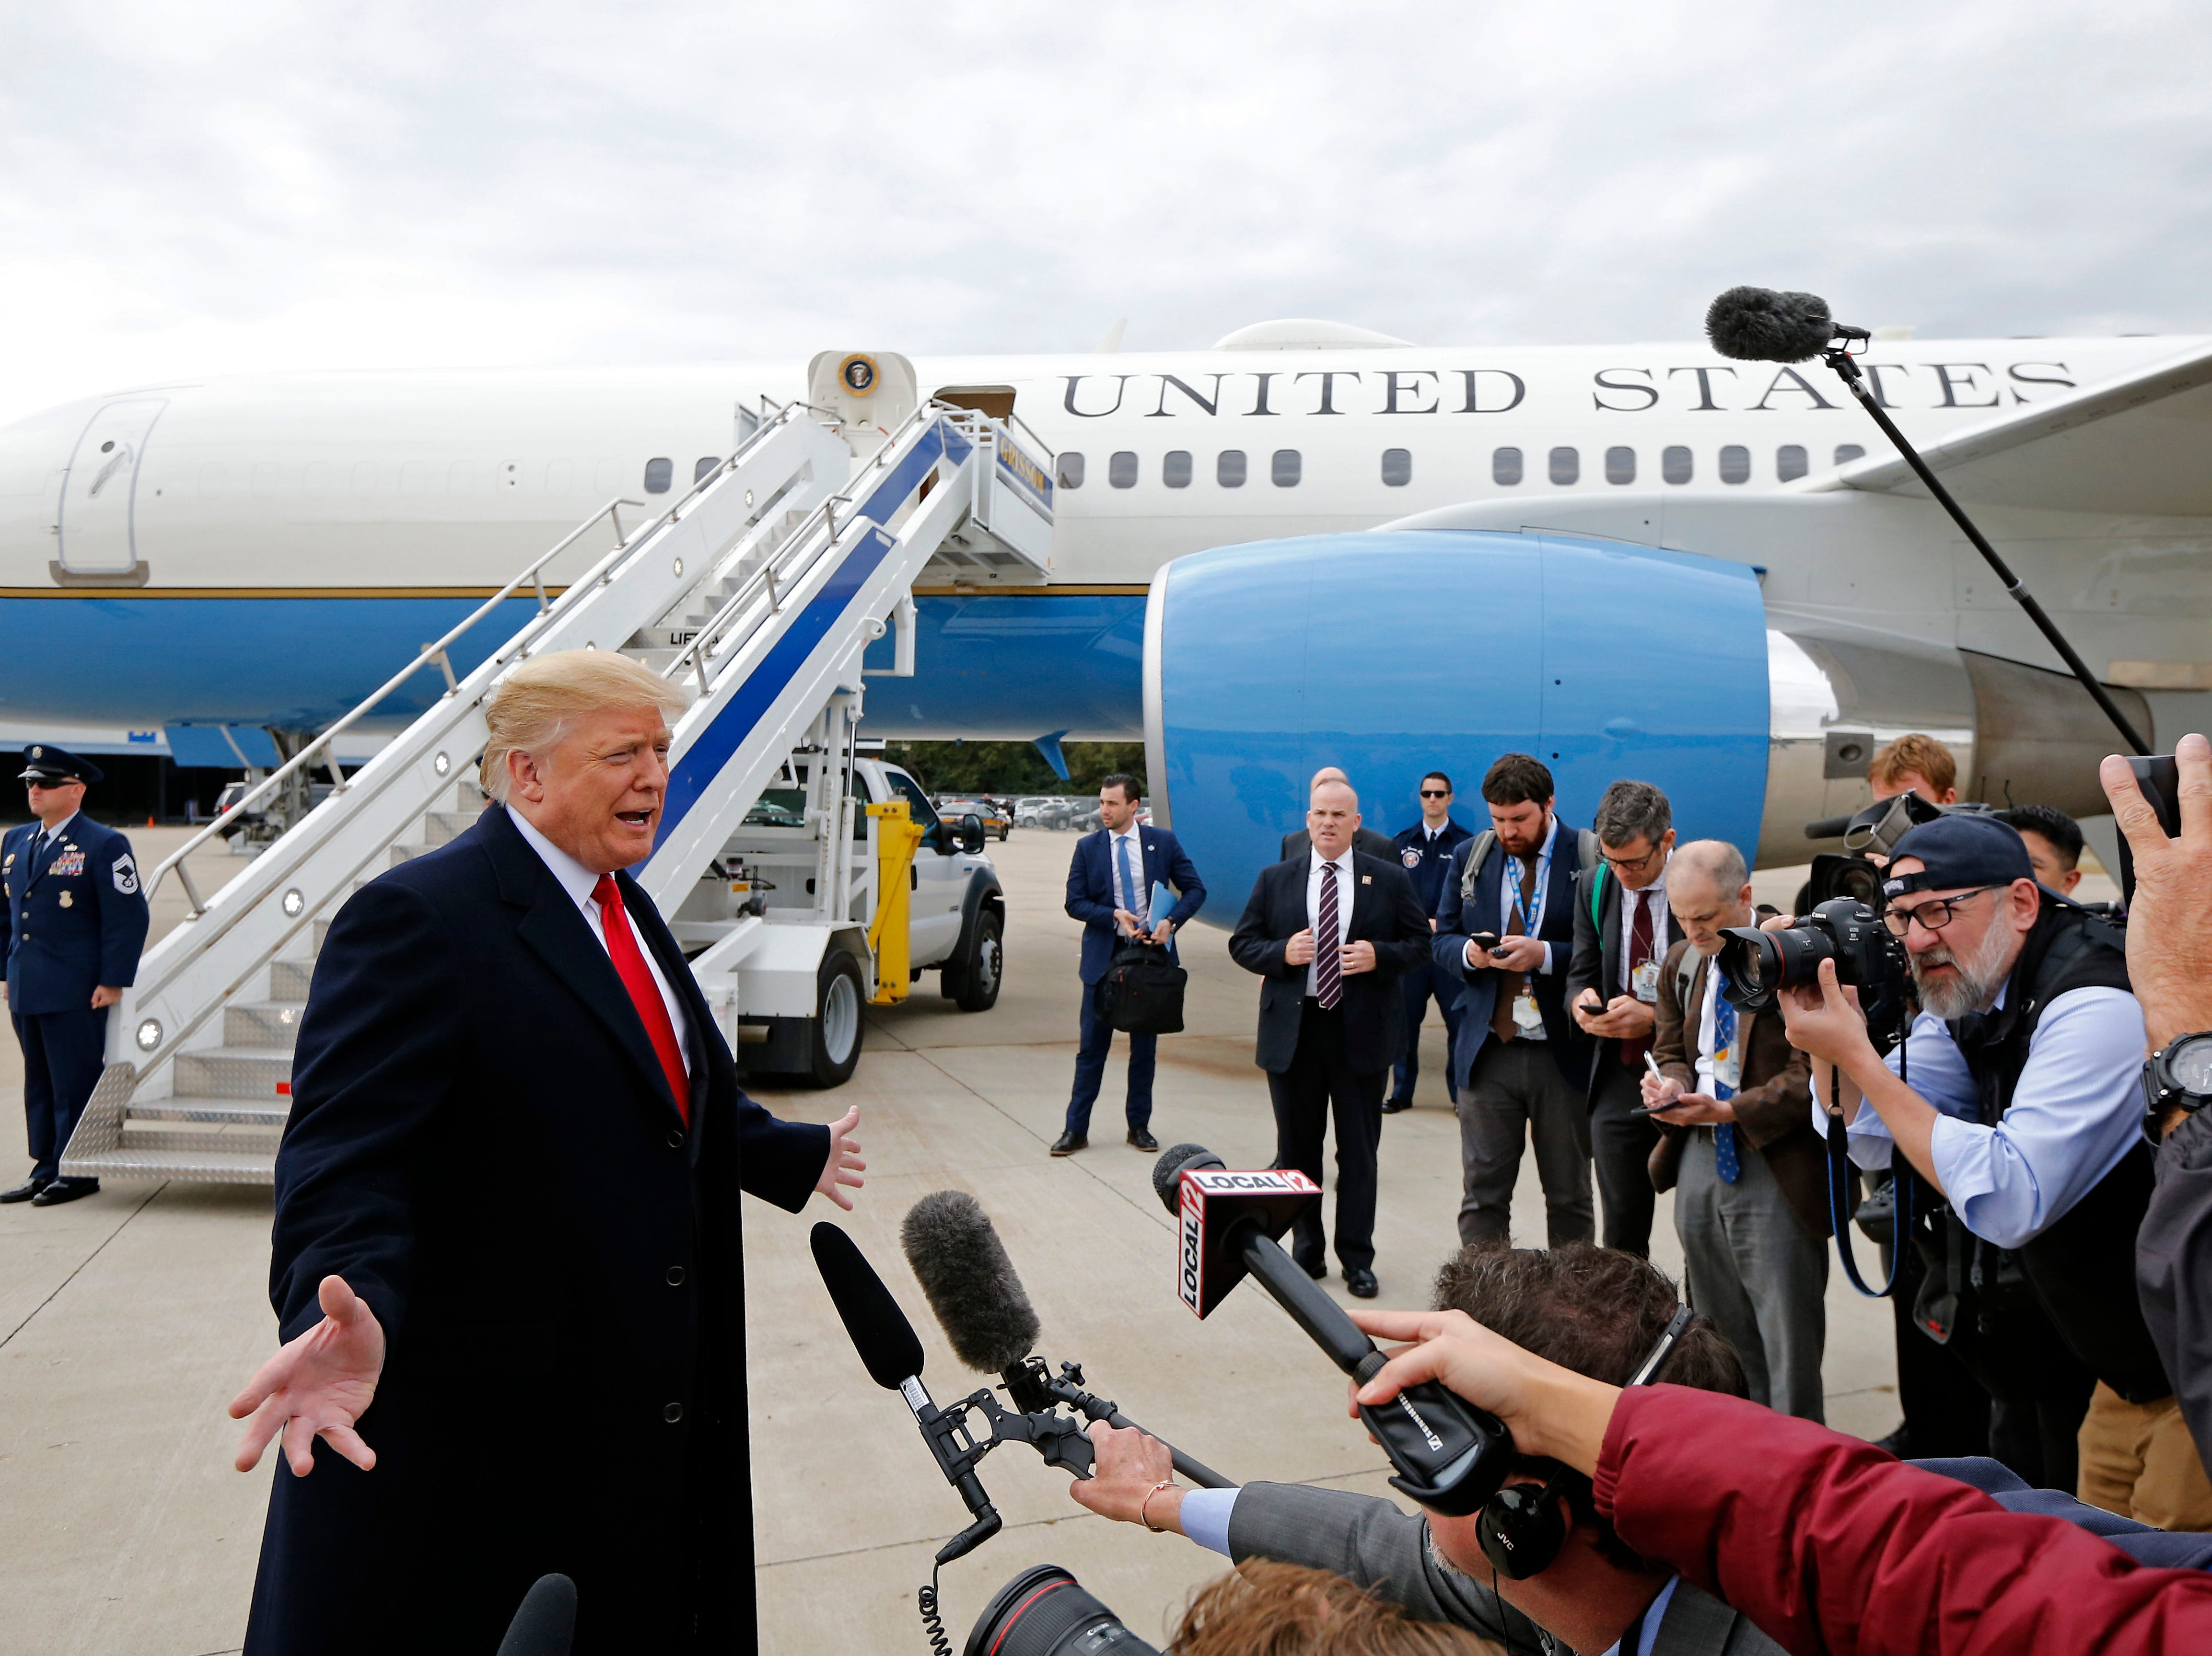 President Donald Trump takes questions from a gathering of reporters next to Air Force One at Lunken Airport in Cincinnati on Friday, Oct. 12, 2018. President Trump visited the Cincinnati area for a MAGA Rally at the Warren County Fair Grounds in Lebanon, Ohio, Friday night.